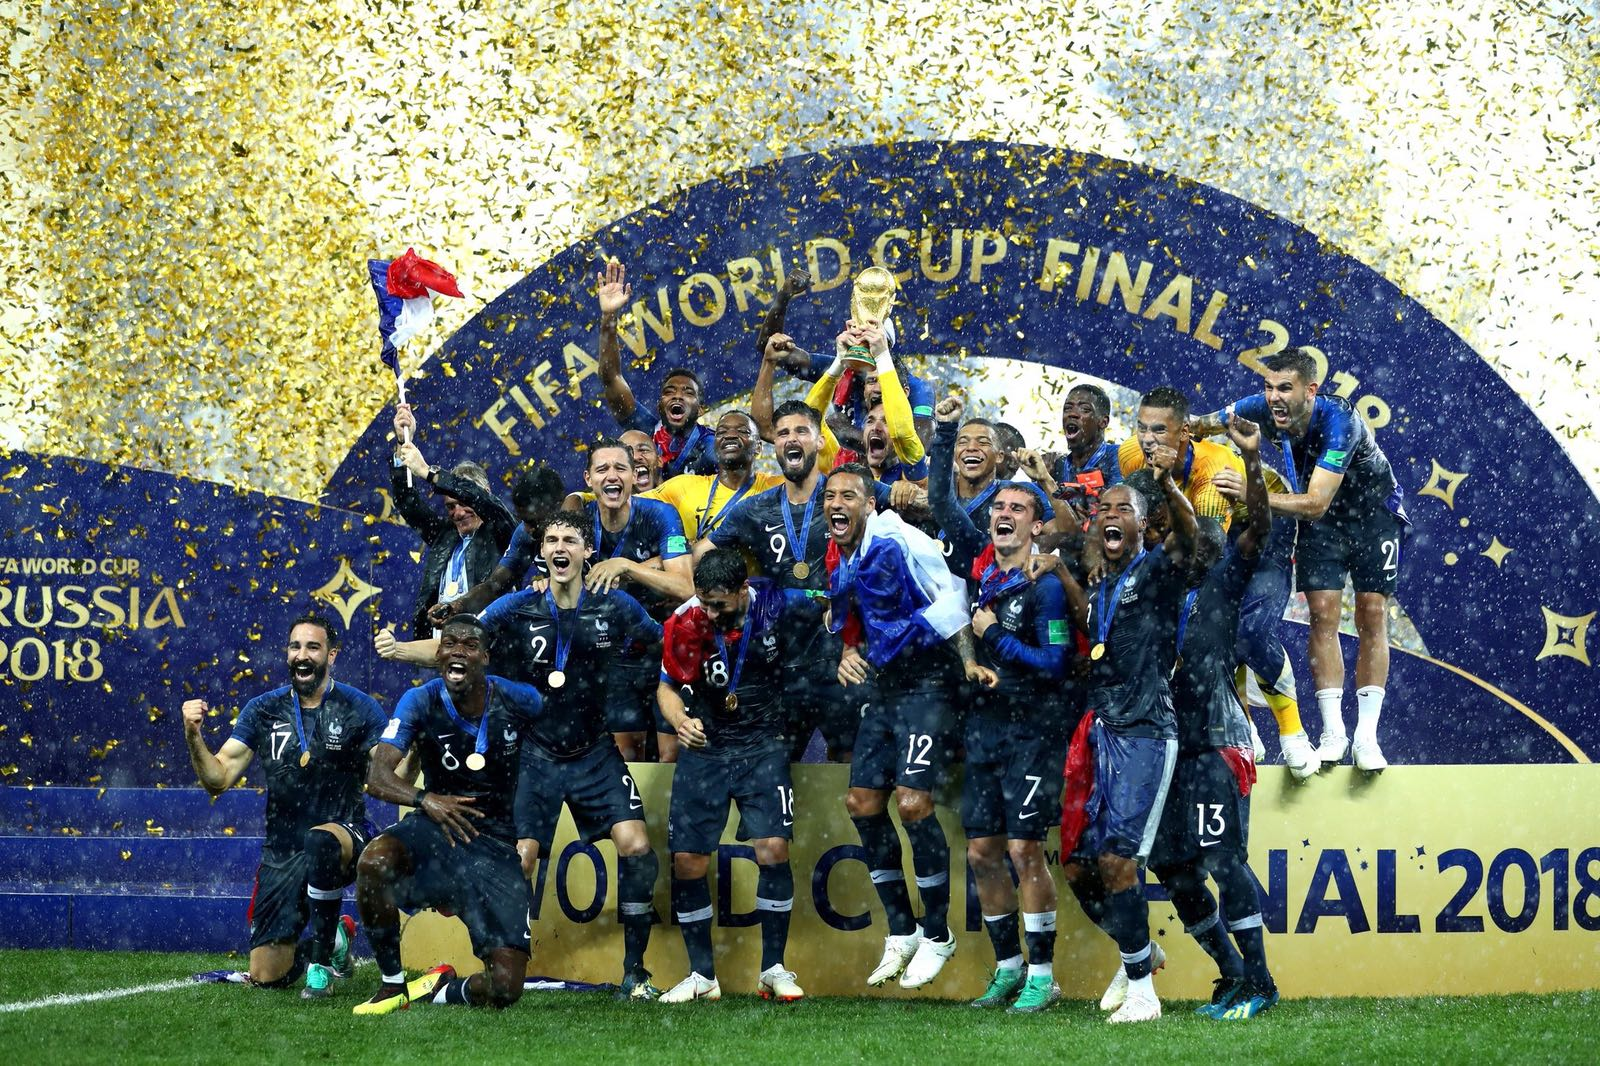 CHAMPIONS DU MONDE. Vive la France ����⭐⭐ https://t.co/YI3bGeHr5e